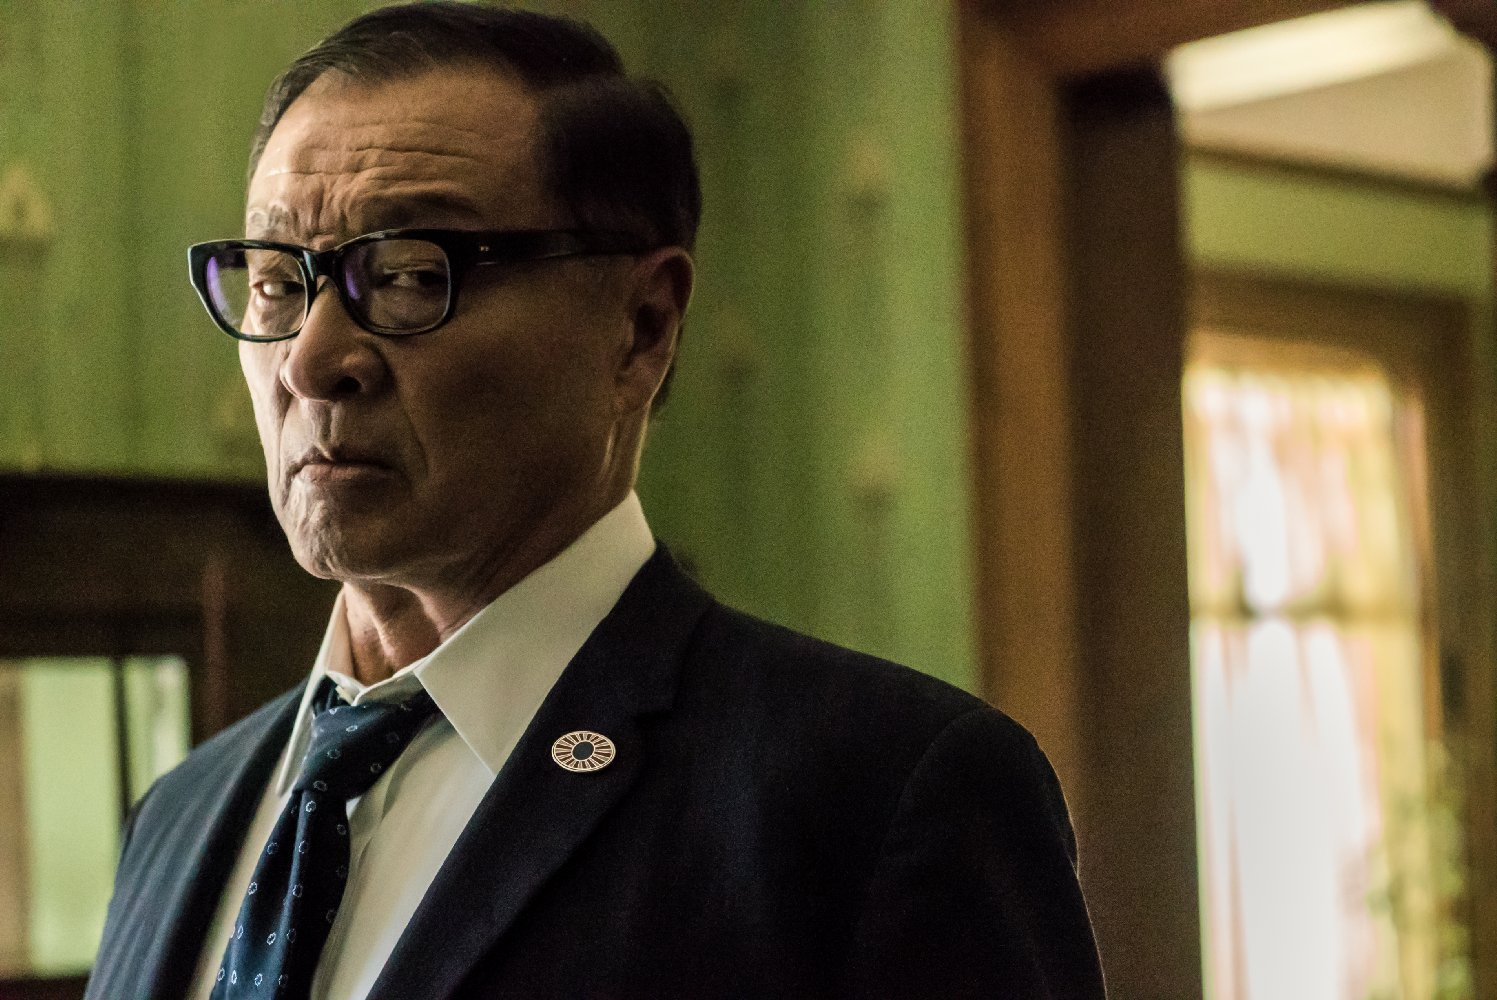 444 The Man in the High Castle 1